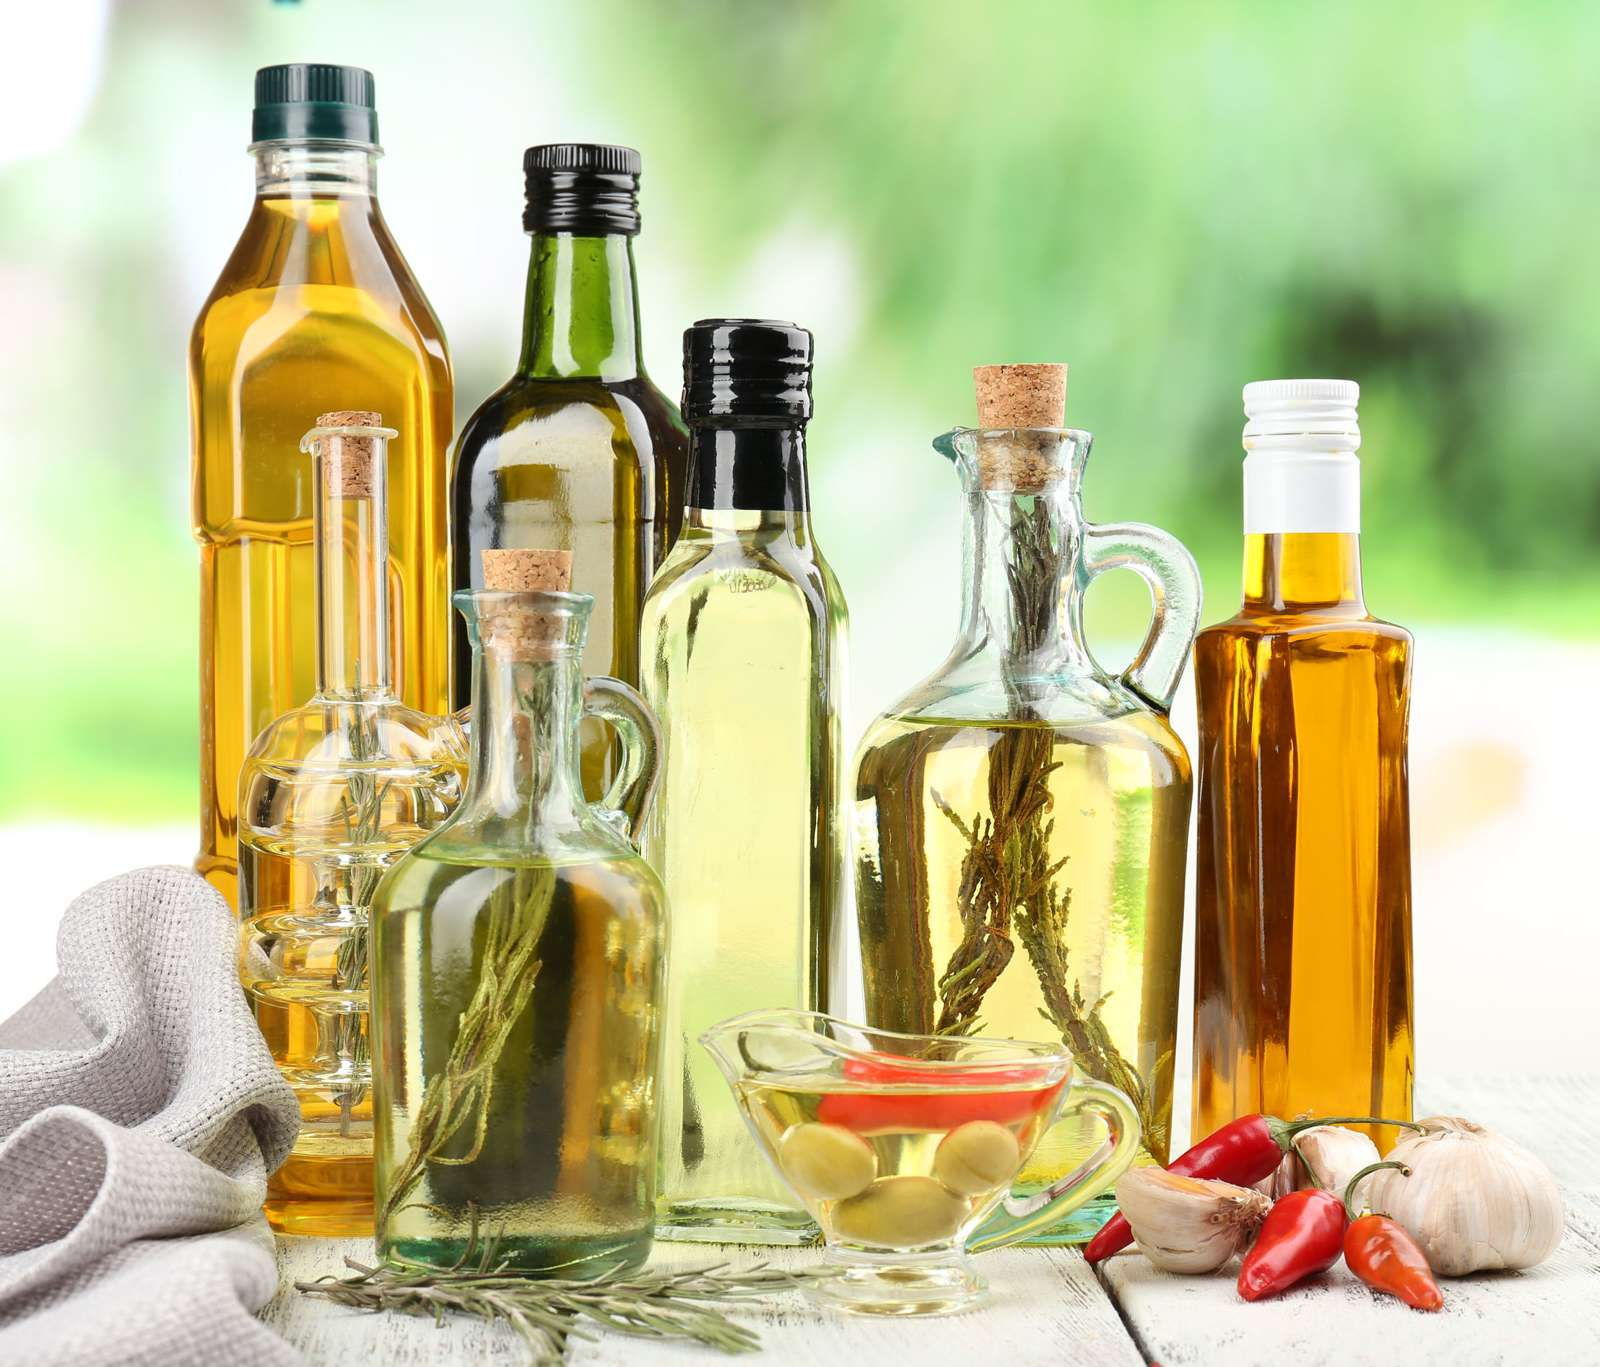 Image of glass bottles filled with quality cooking oil and some infused with herbs